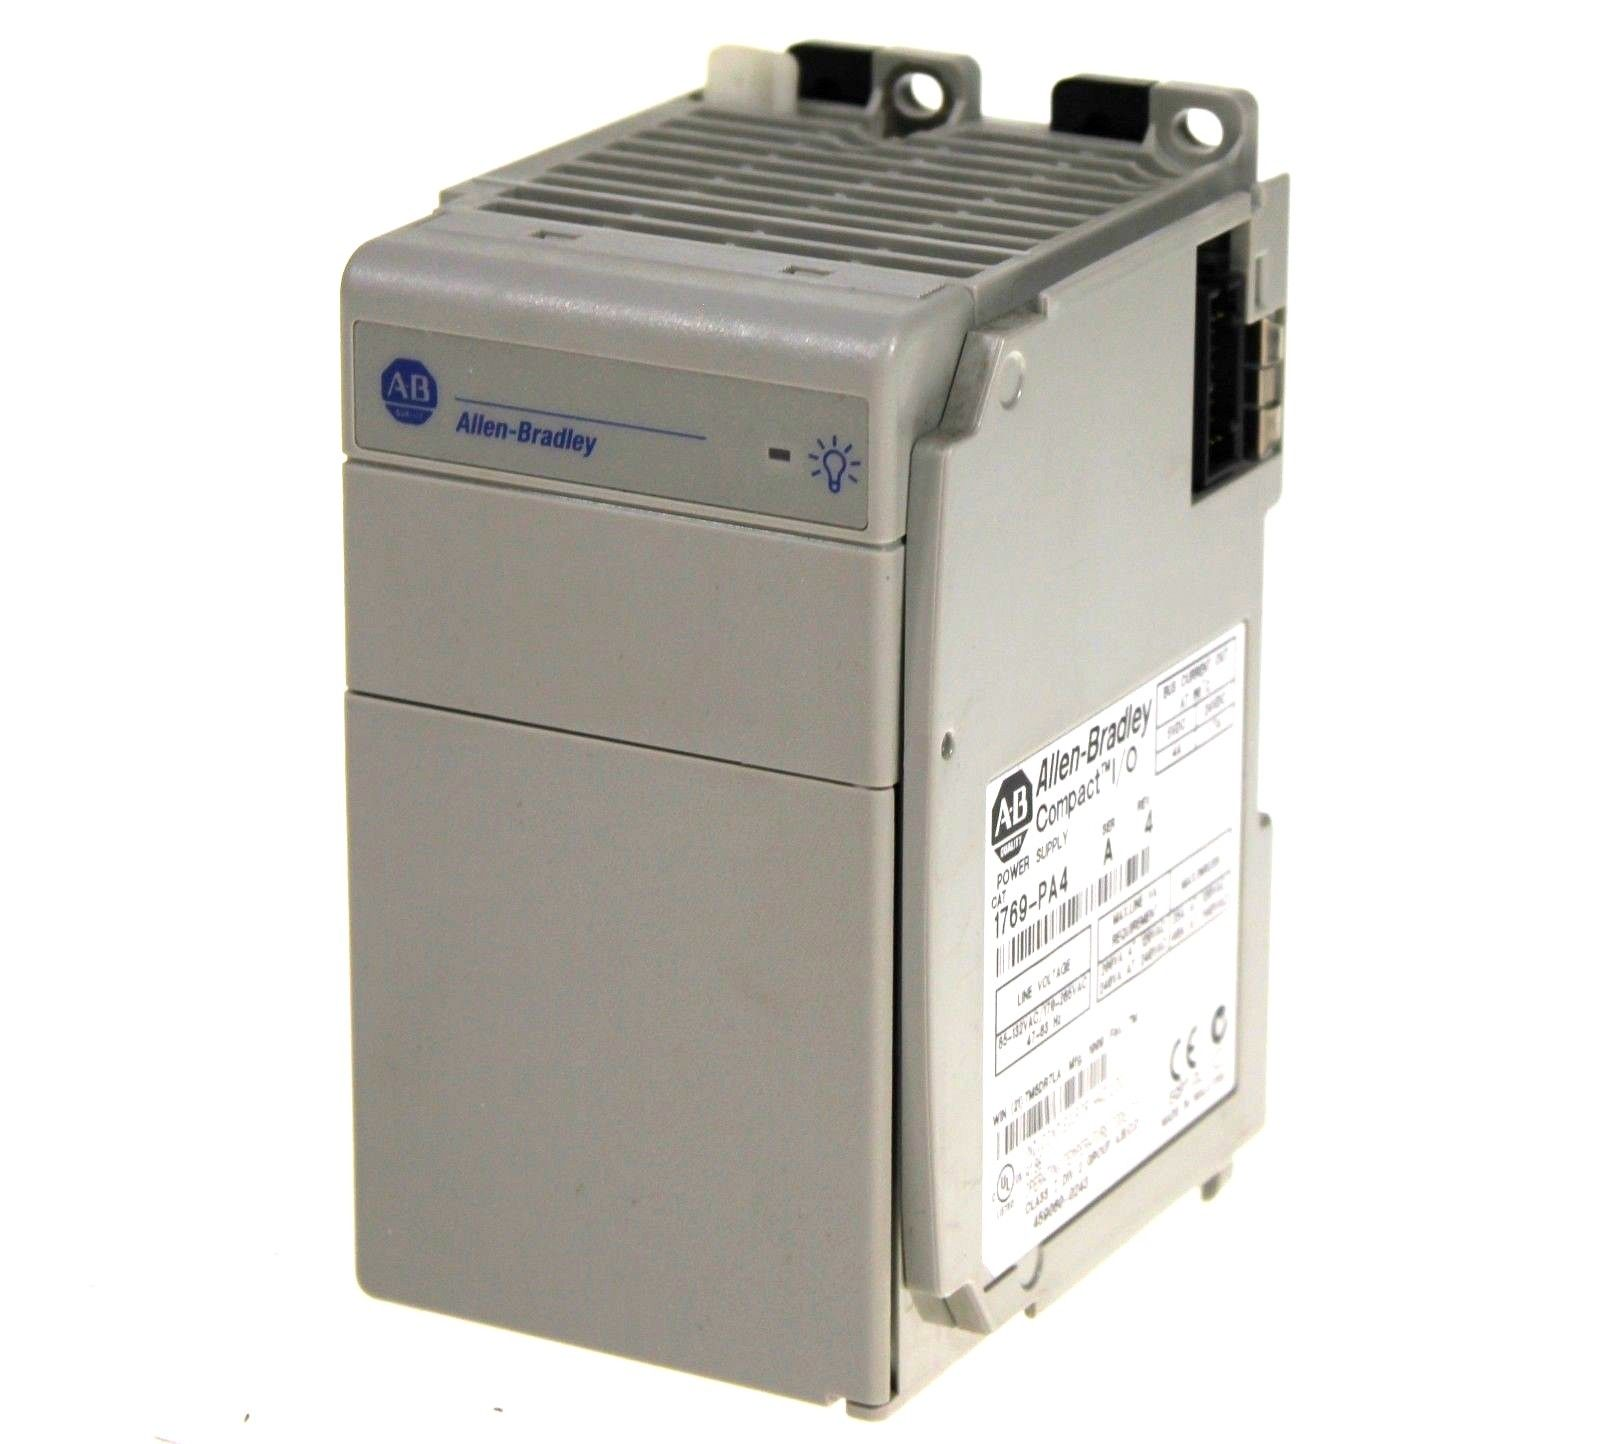 Allen Bradley 1769-PA4 /A Compact I/O 24VDC Power Supply